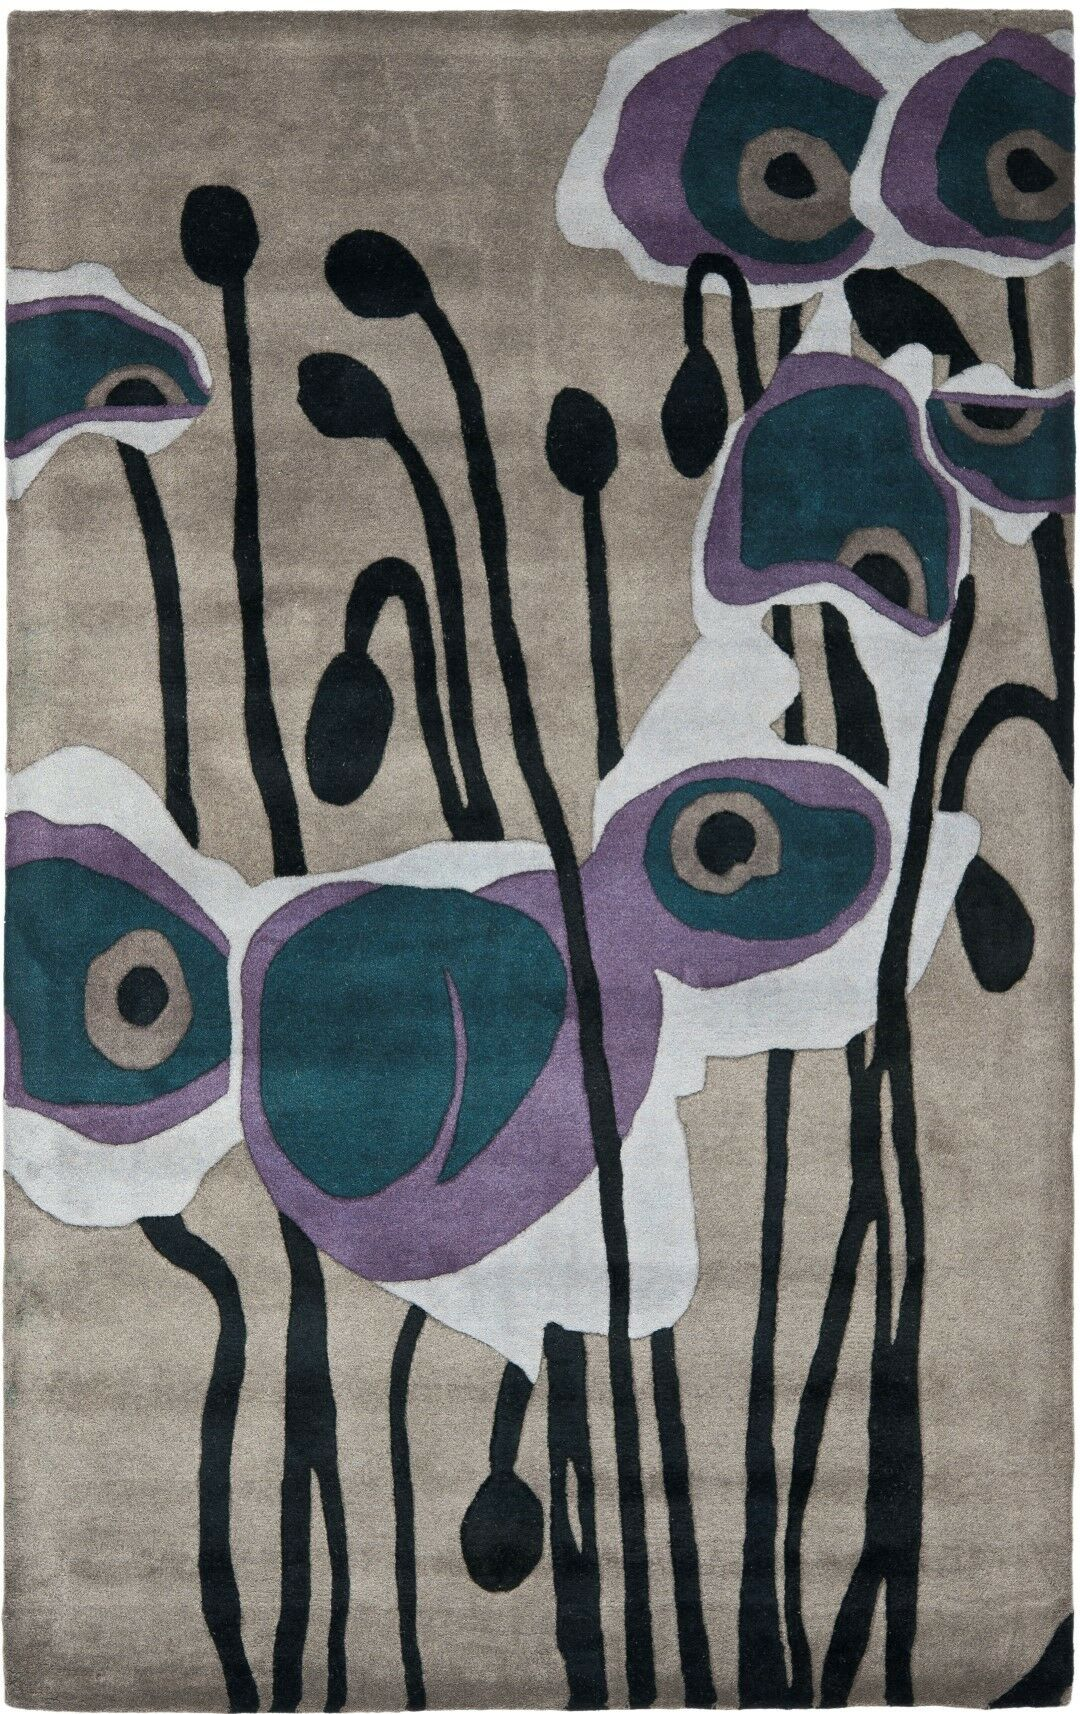 Freda Hand-Tufted Wool Black/Gray Area Rug Rug Size: Runner 2'6